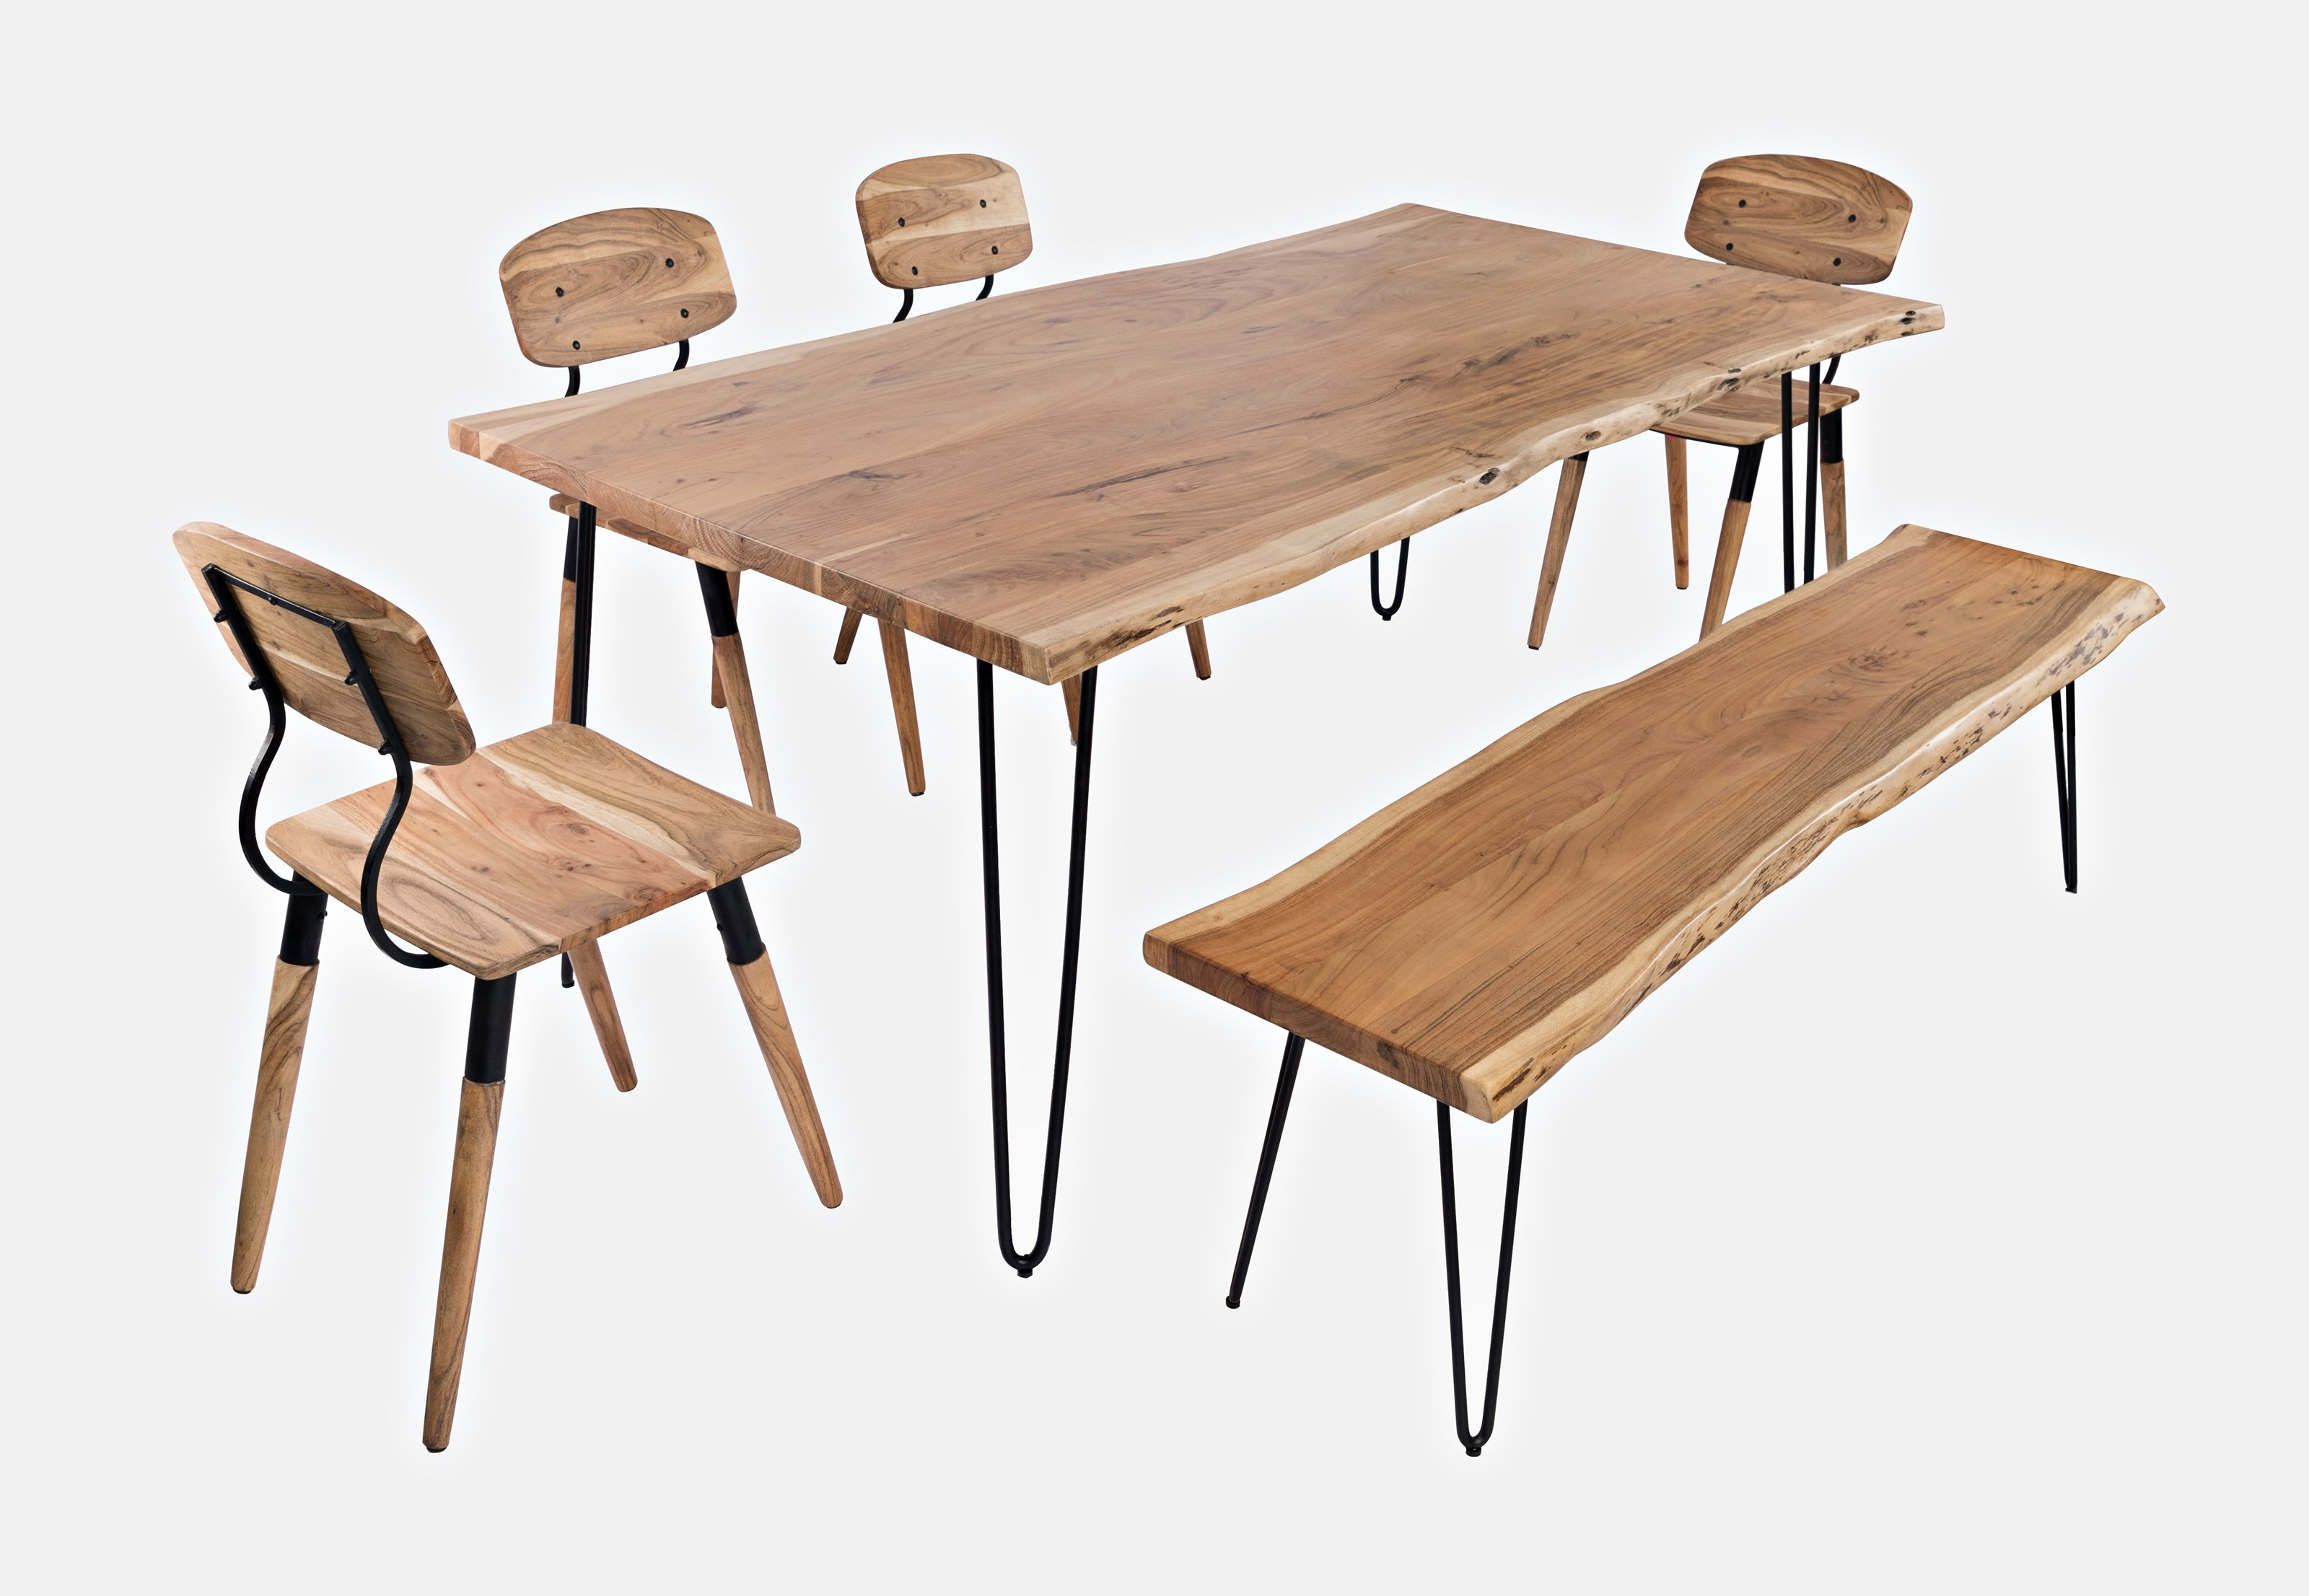 """Nature's Edge 79"""" Dining Table with 4 Chairs and Bench by Jofran at Jofran"""